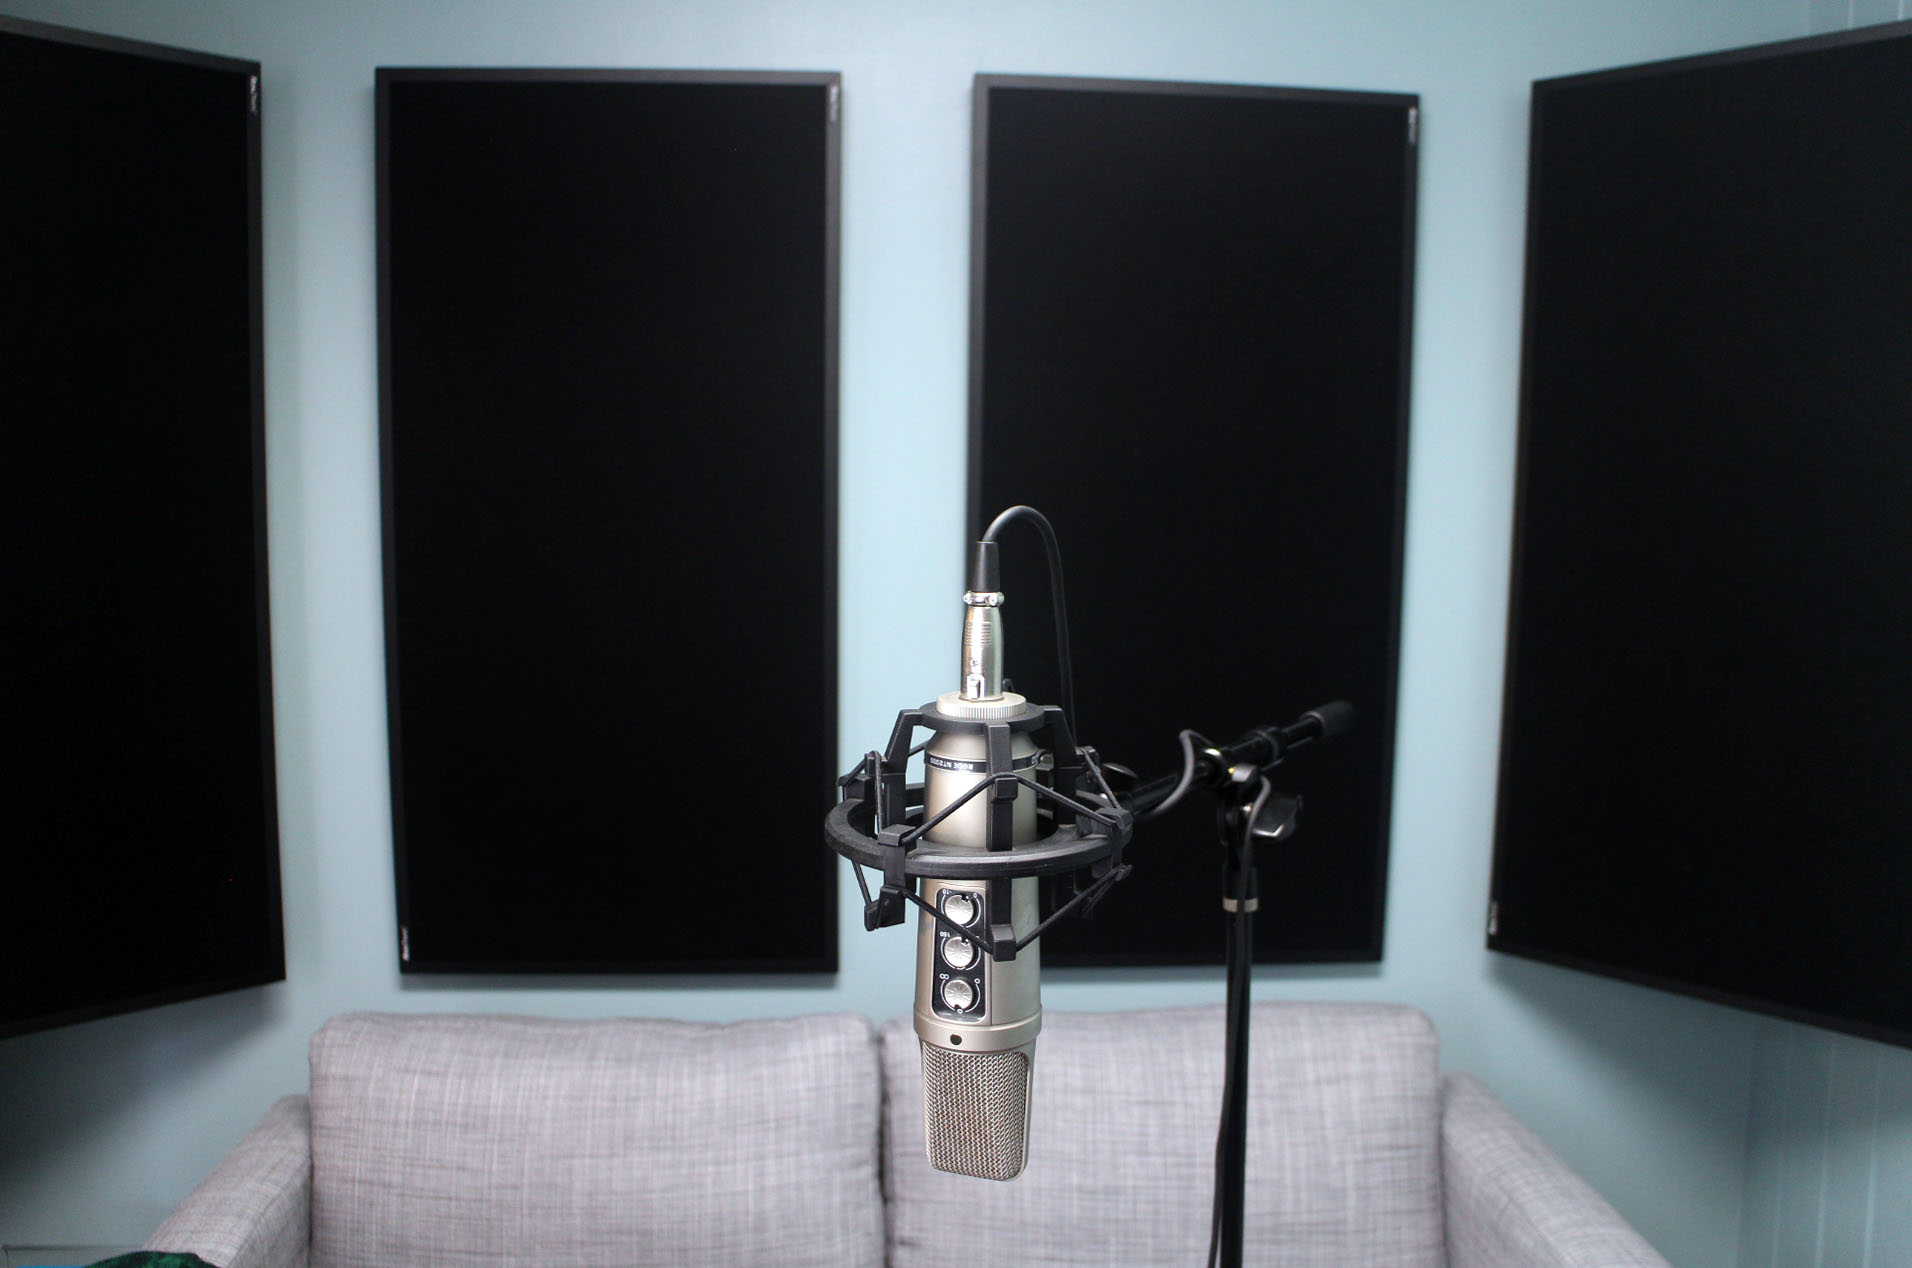 The rear wall of my sound editorial suite with my prize RealTraps in place.